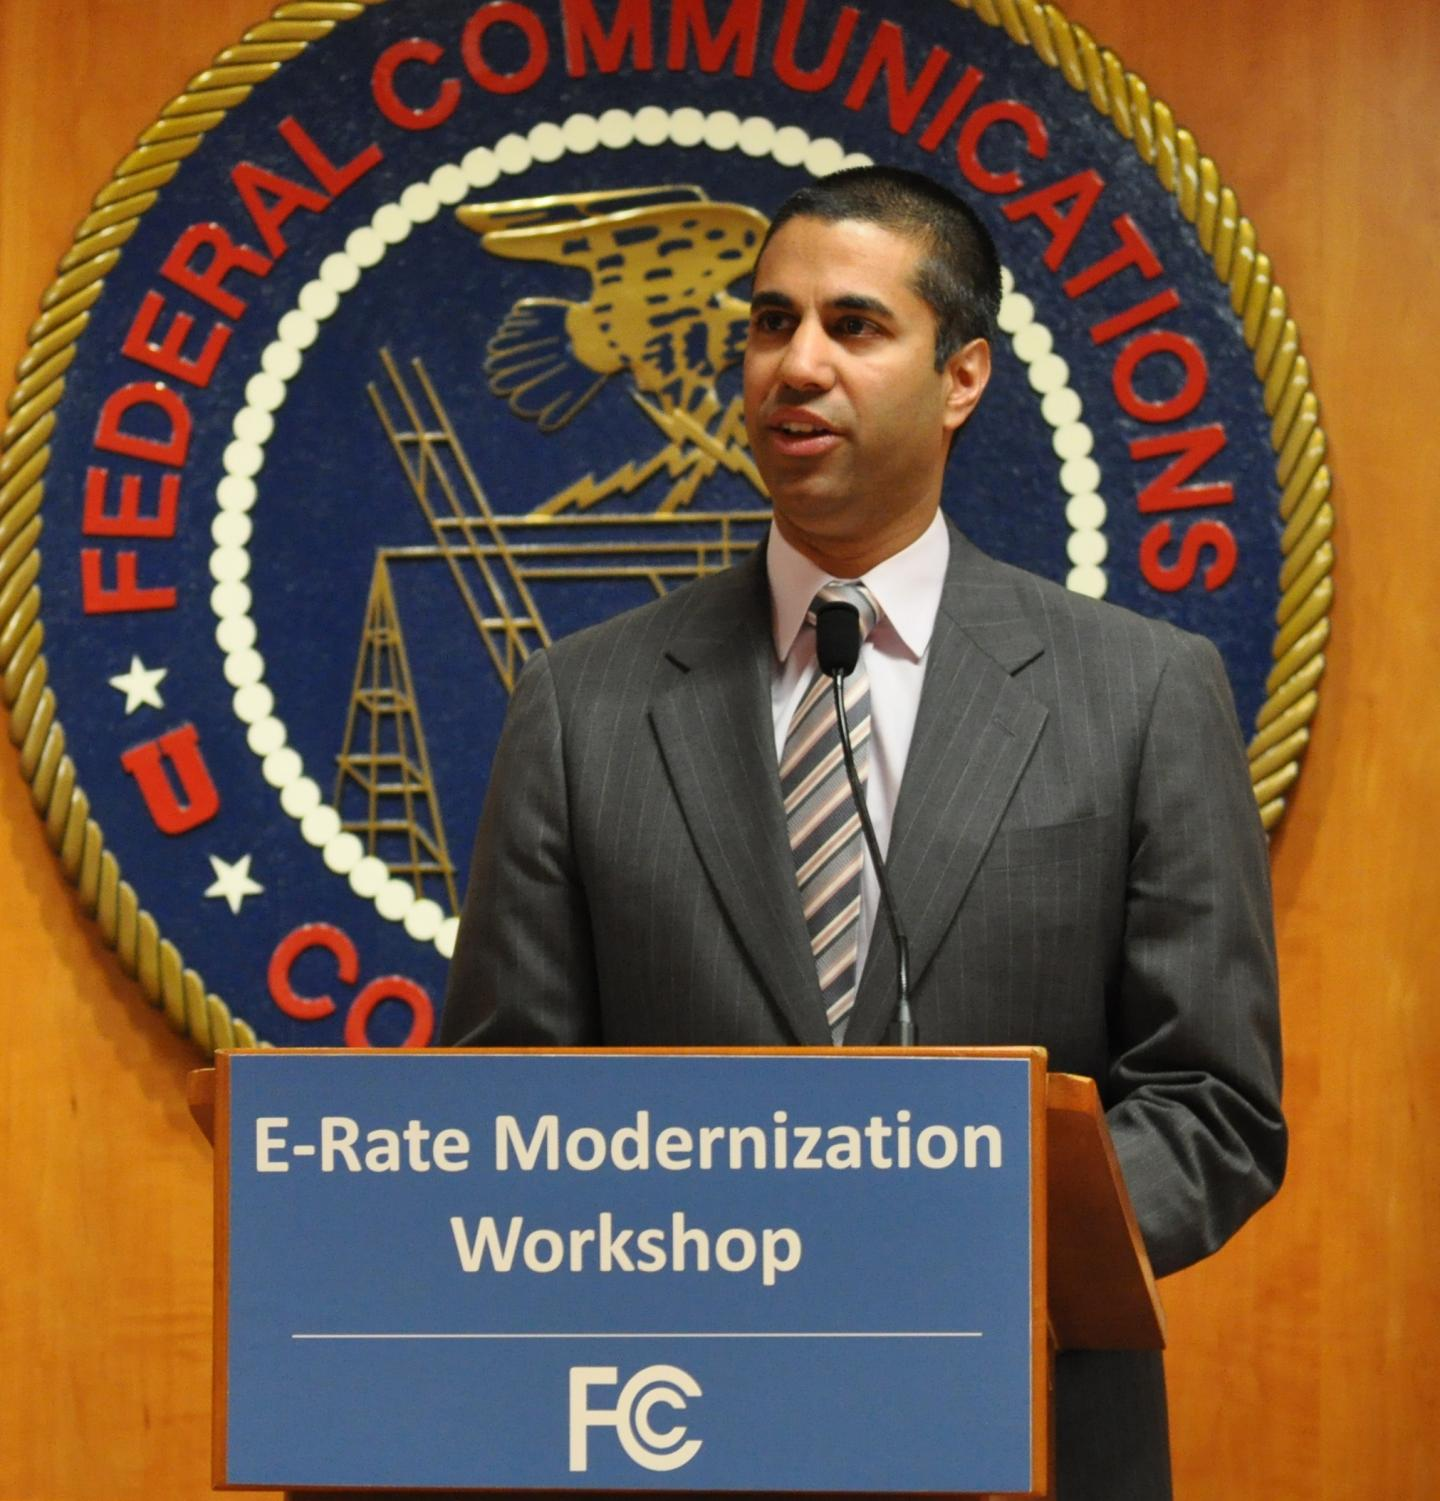 Ajit Pai, then-commissioner for the FCC, speaks at the E-Rate Modernization Workshop on May 5, 2014. Now chairman, Pai plans to repeal net neutrality rules with a vote on December 14.